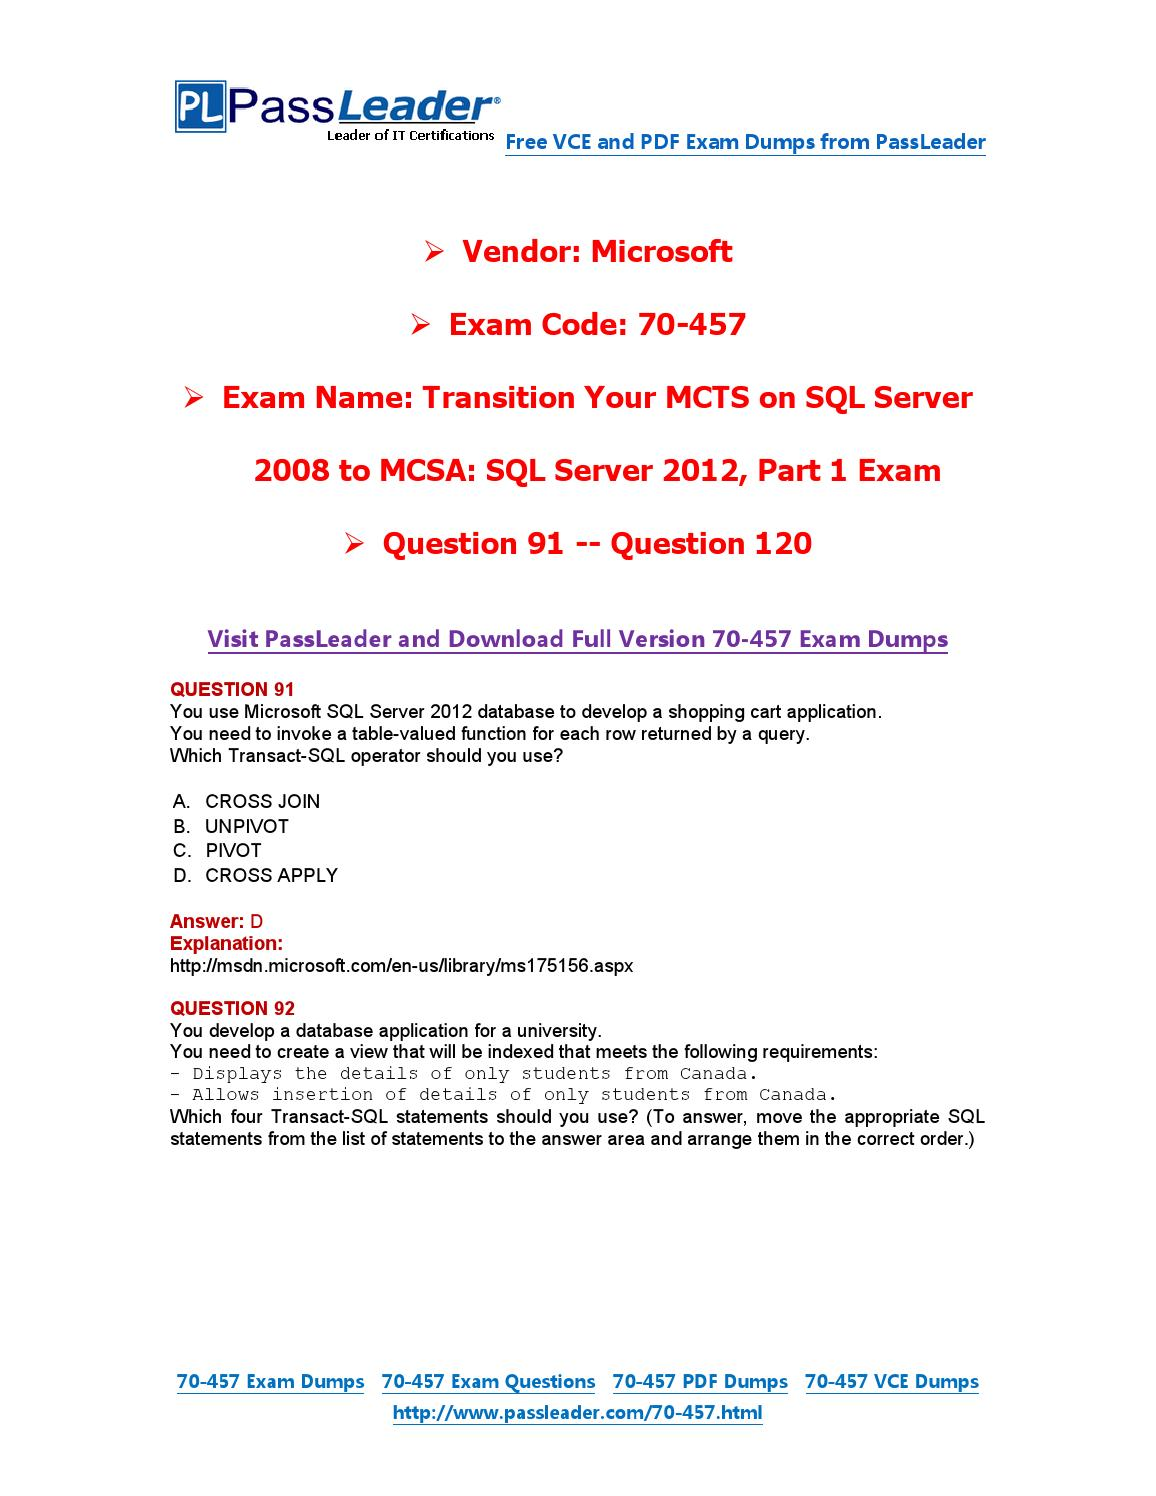 70-457 Exam Dumps with PDF and VCE Download (91-120) by ...